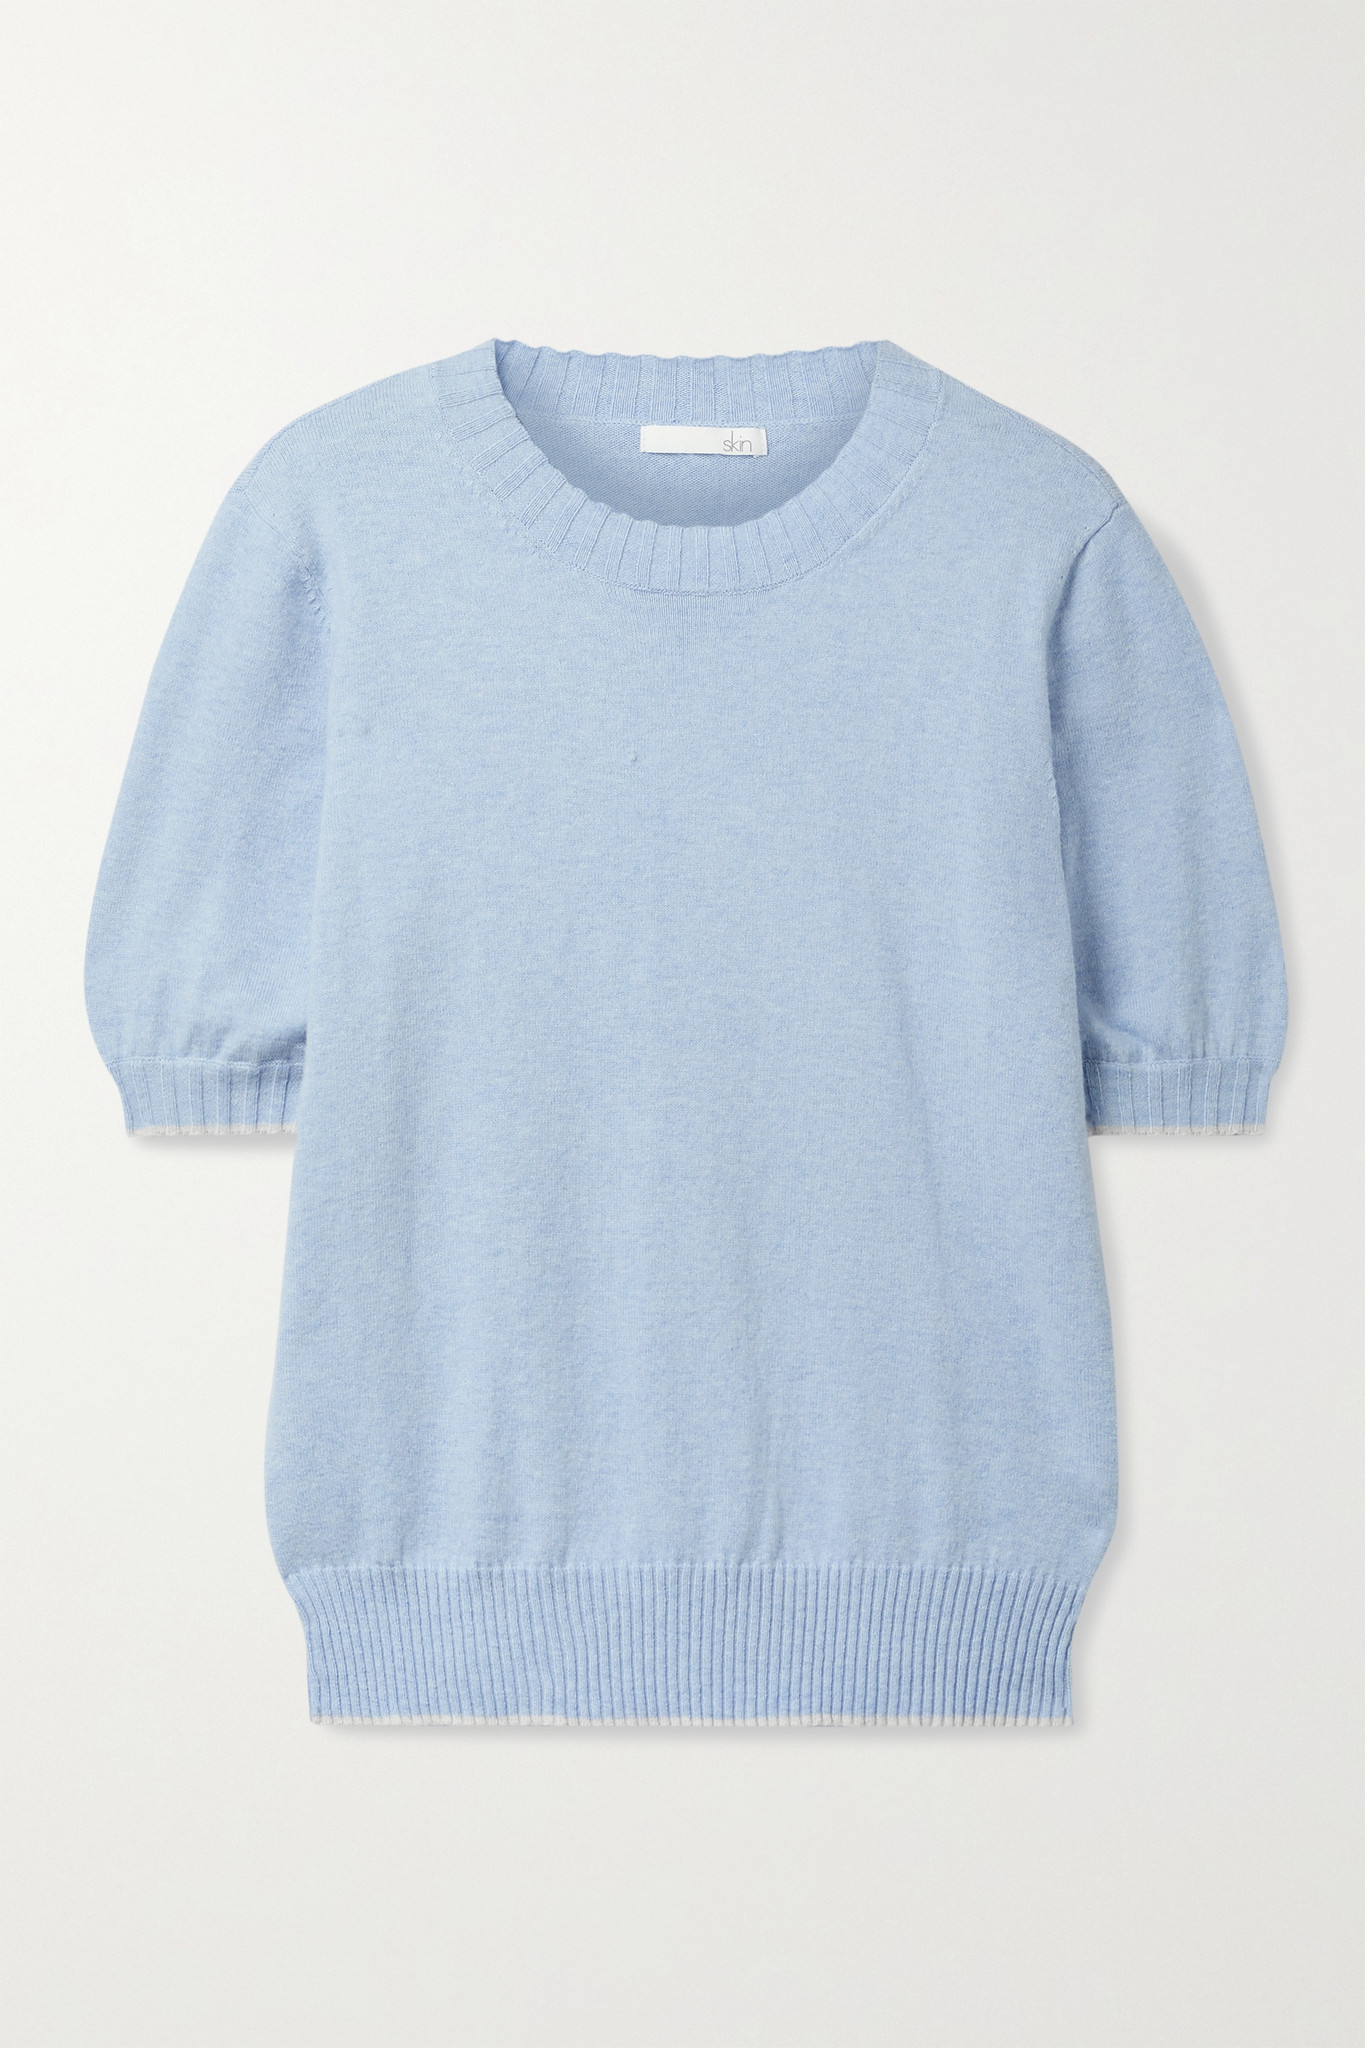 SKIN - Mirren Cotton And Cashmere-blend Sweater - Blue - large